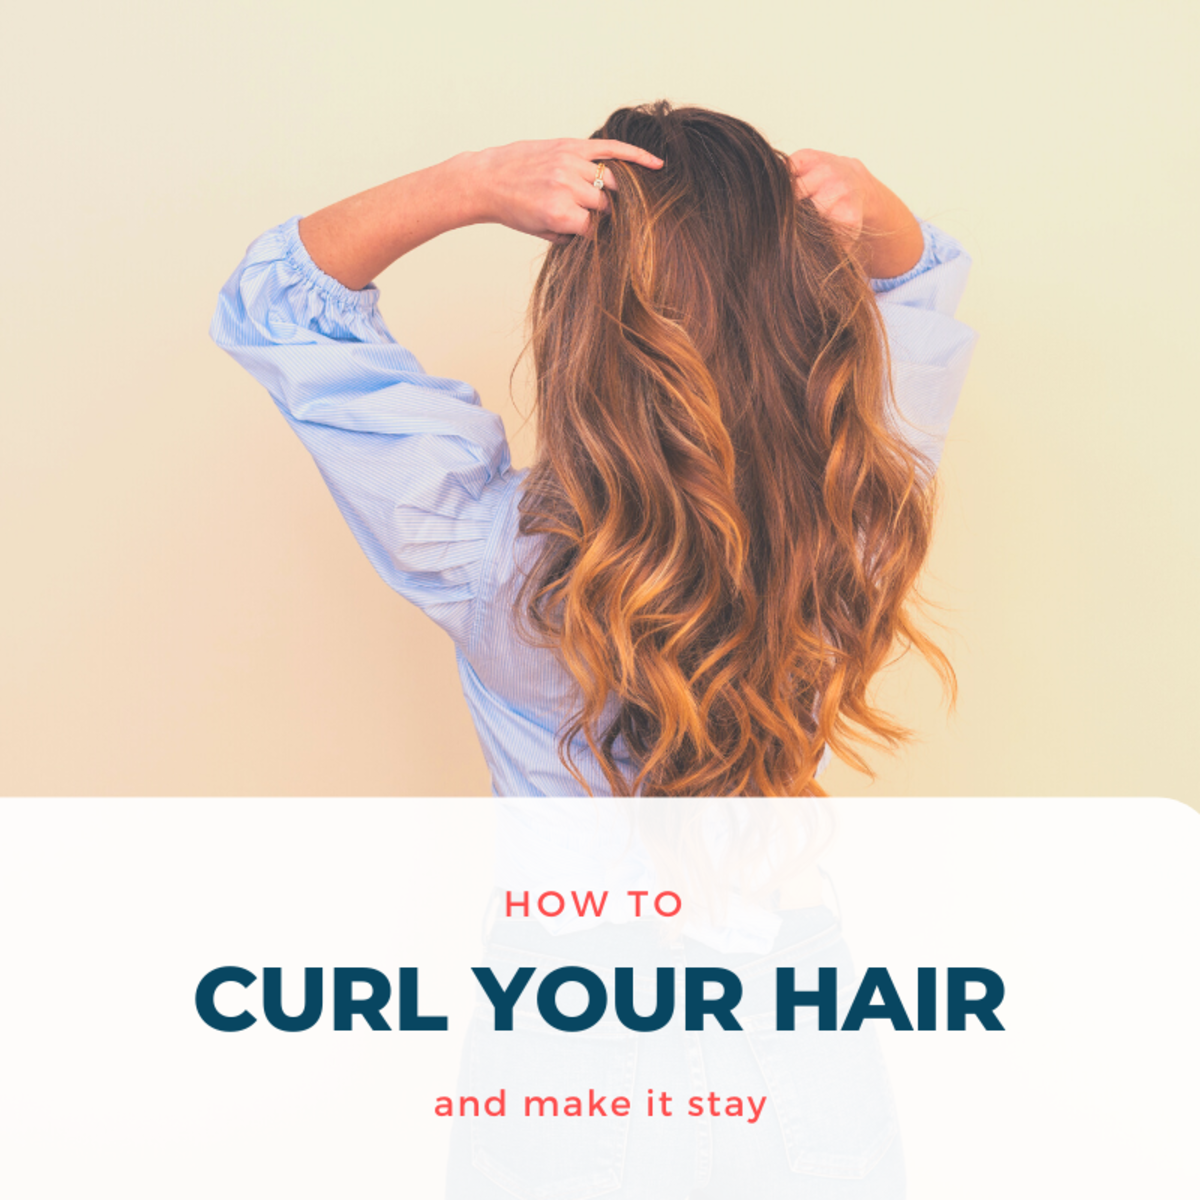 Battling your hair?  Check out these hair curling tips that will have you looking fantastic in no time.